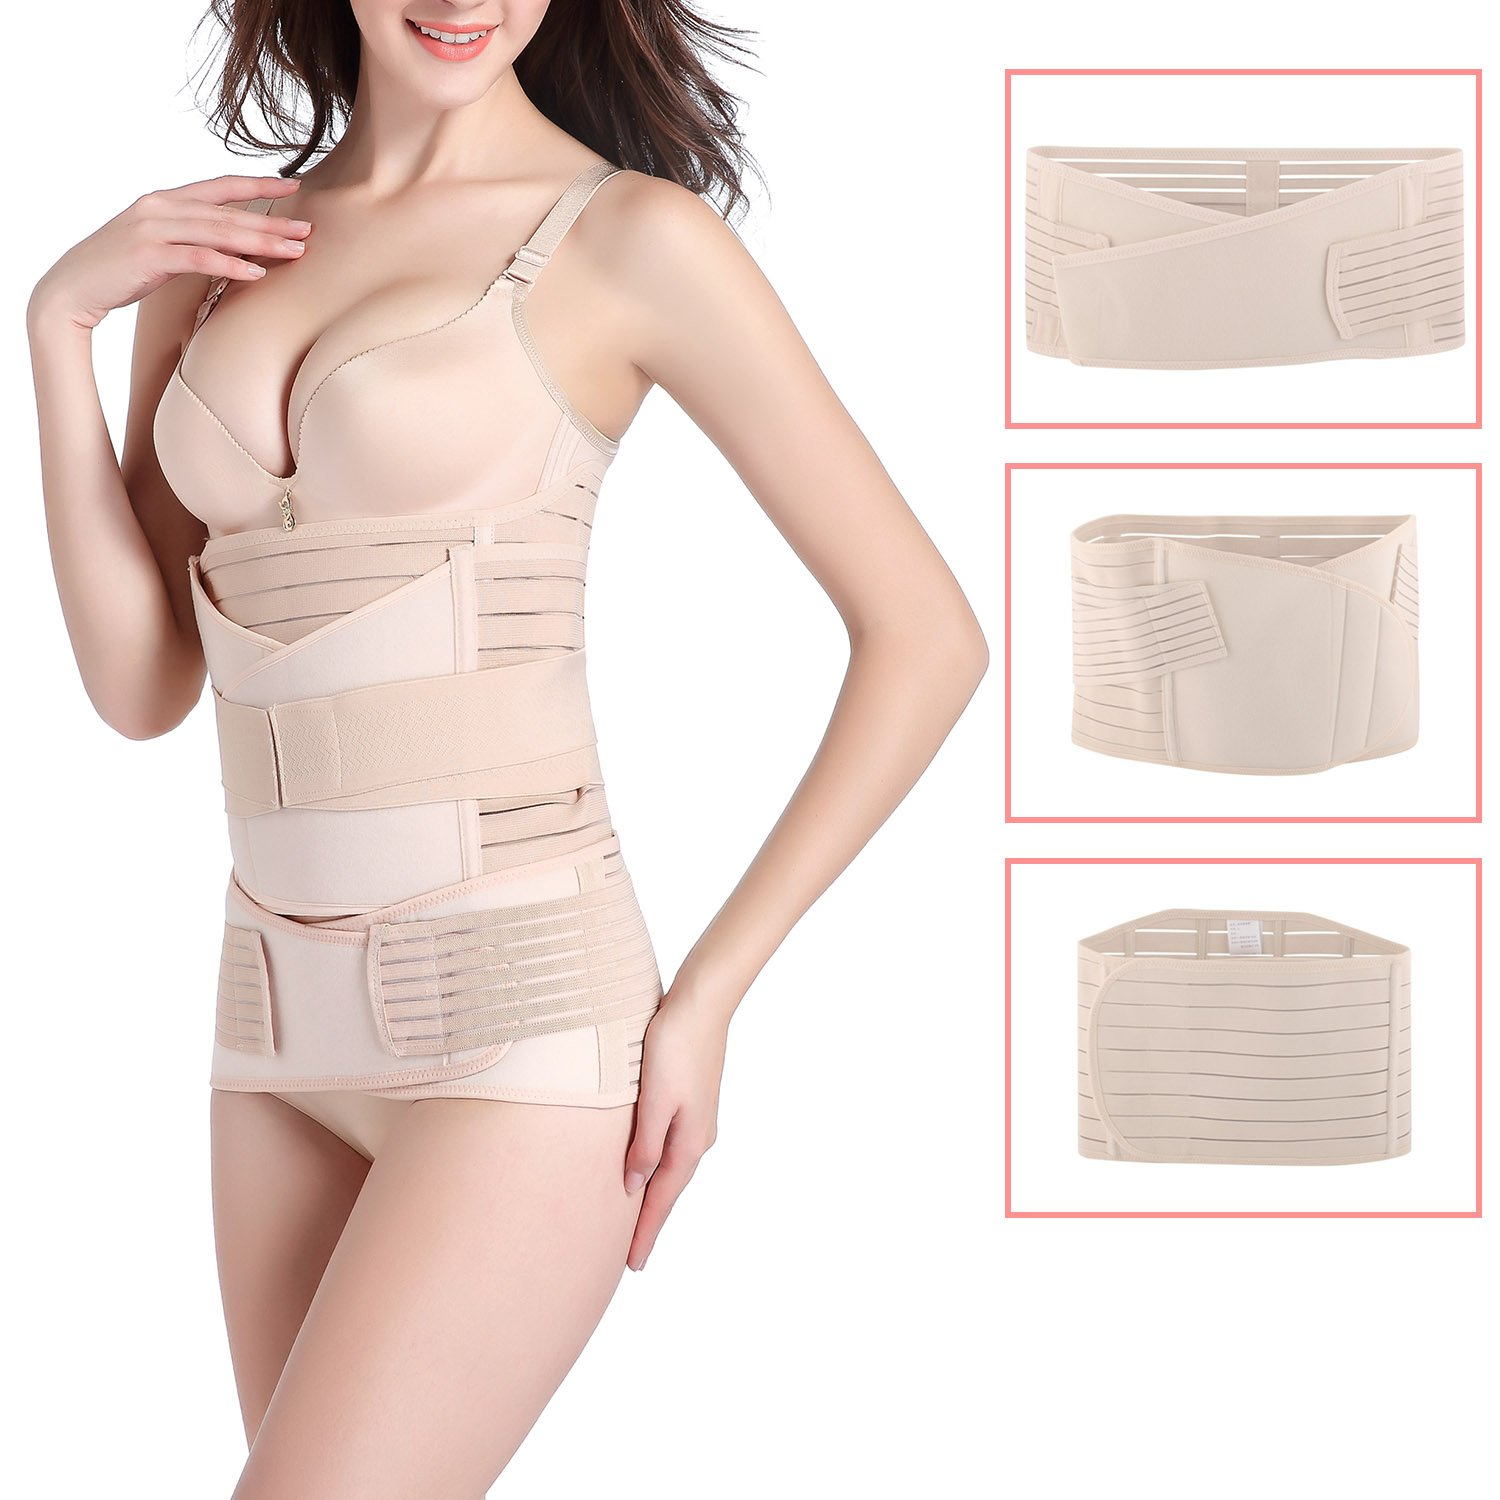 Hip Mall 3 in 1 Postpartum Belly Wrap Girdle Support Recovery Band Belt Body Shaper Postnatal Shapewear